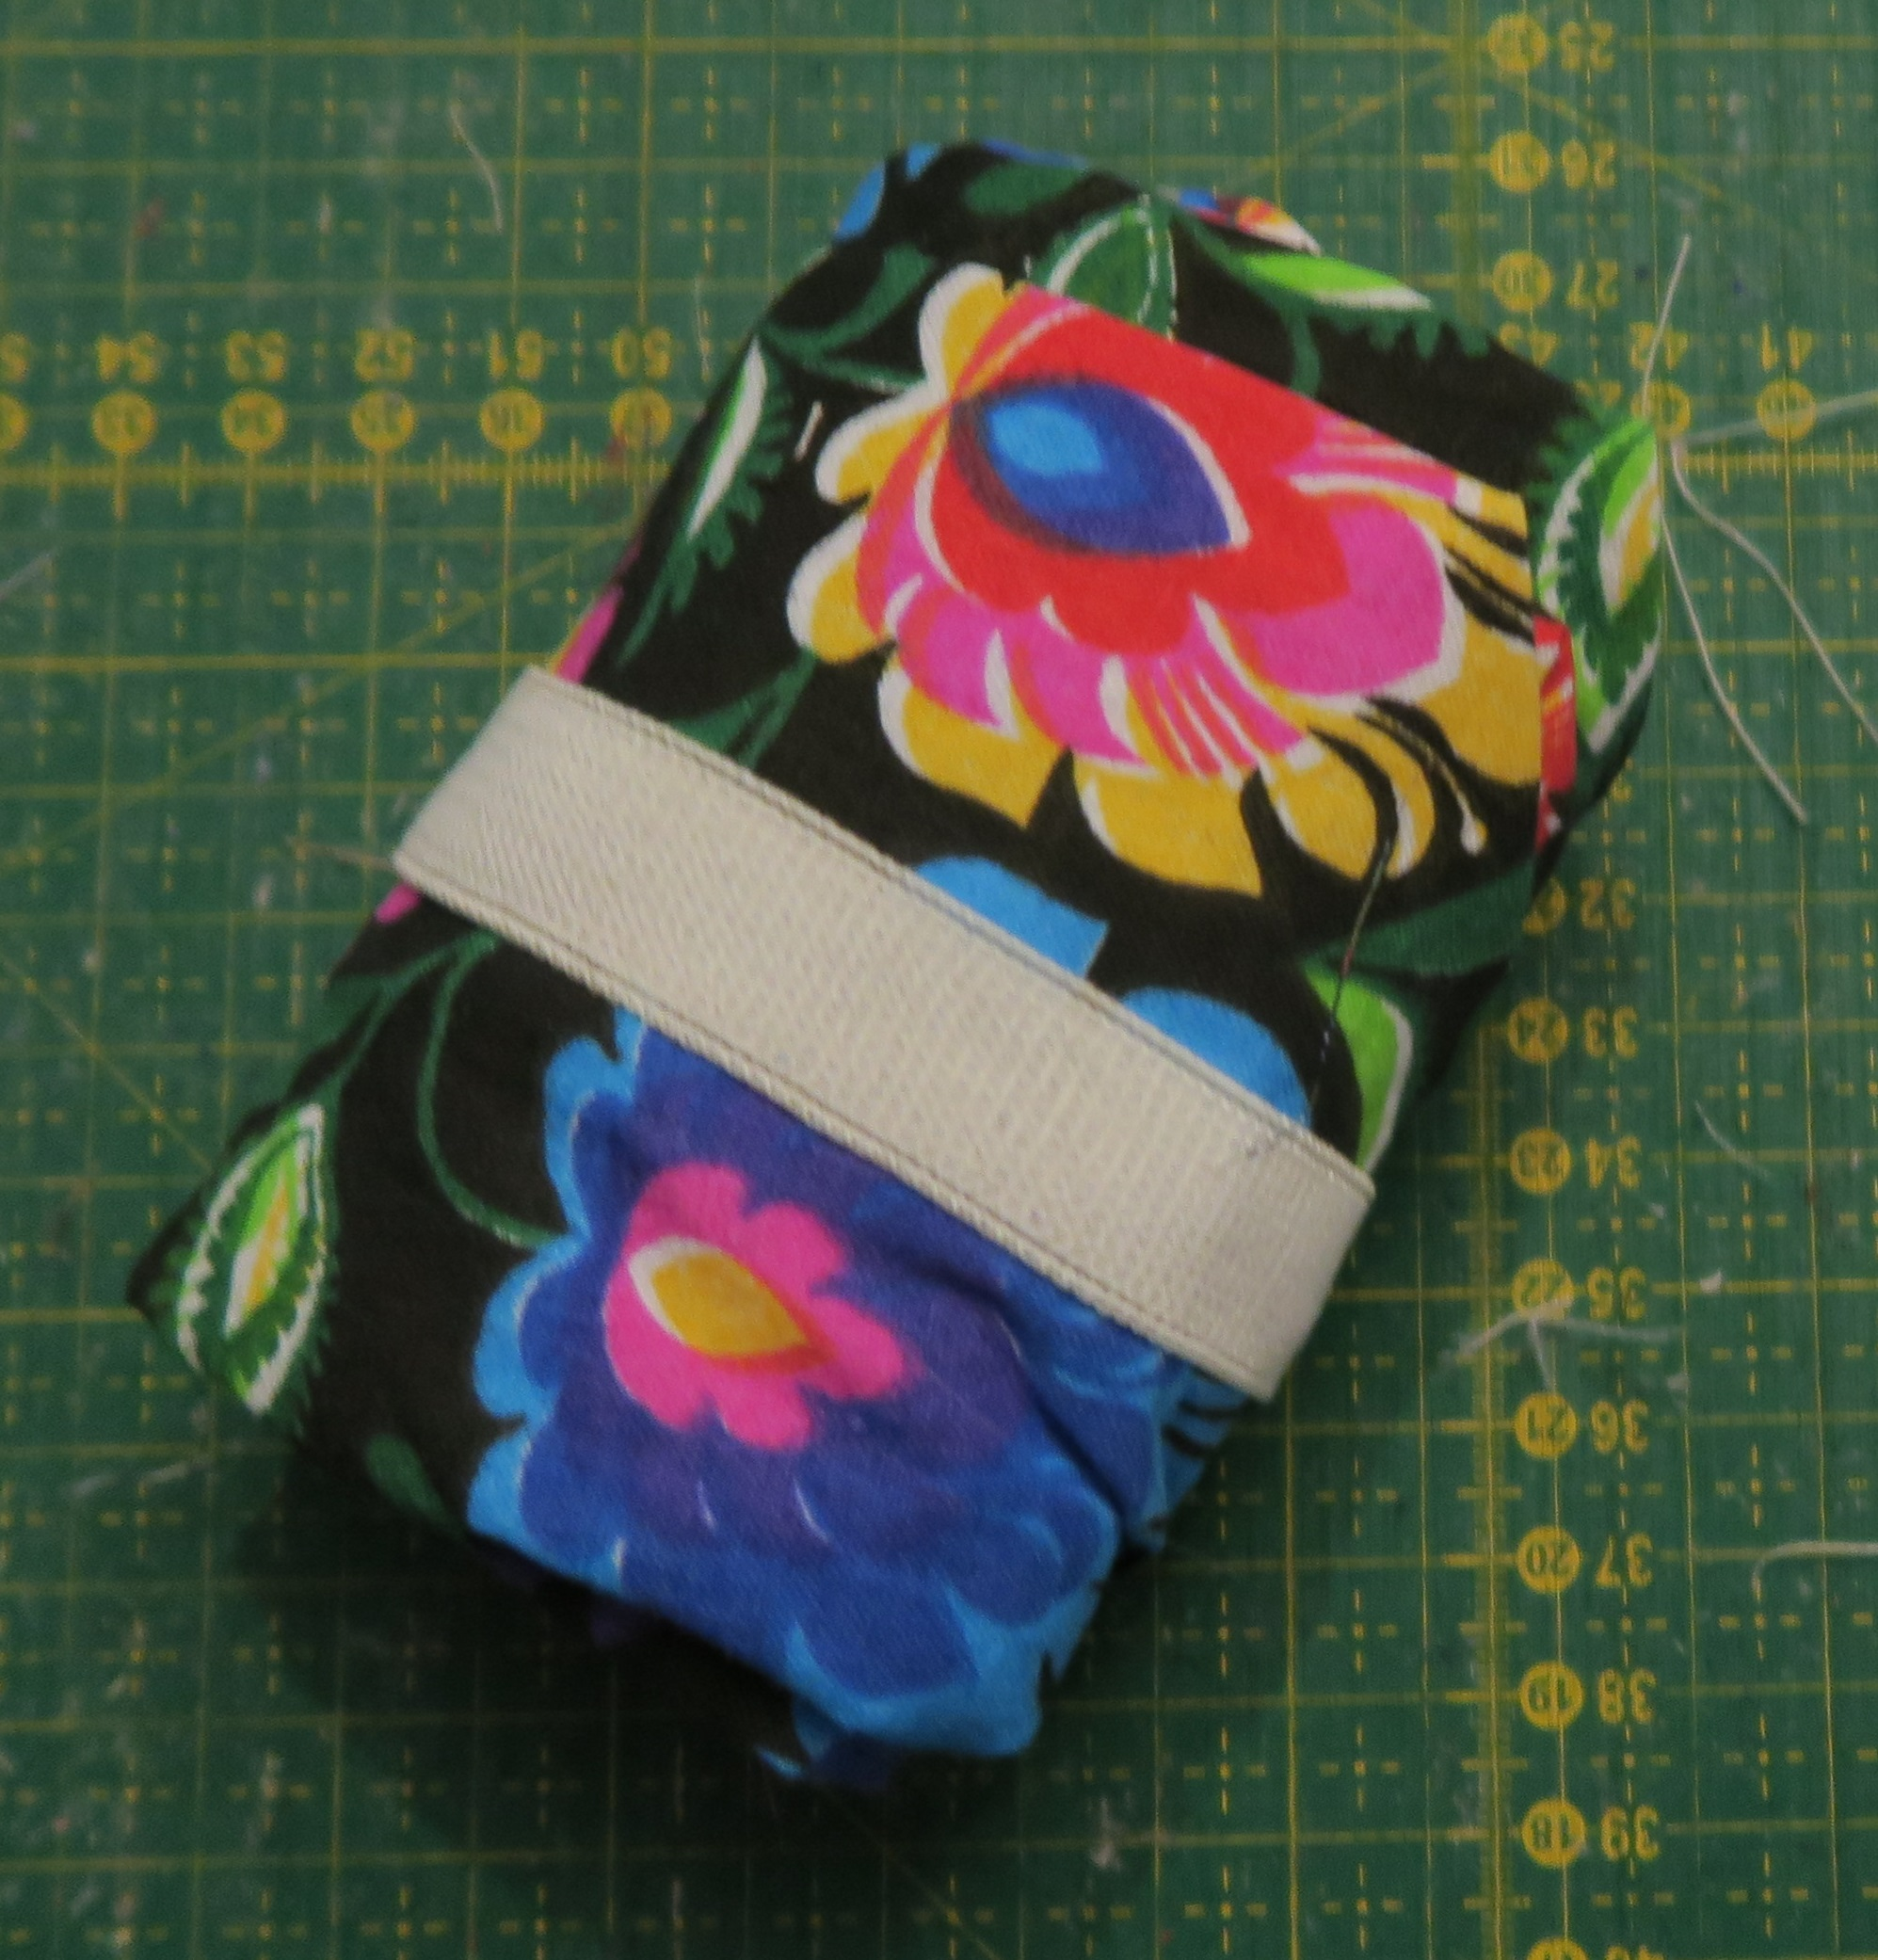 rolled up fabric, approximately 1 yard, but the size of the floral fabric is impossible to determine with the current folding. It appears to be a fabric brick.